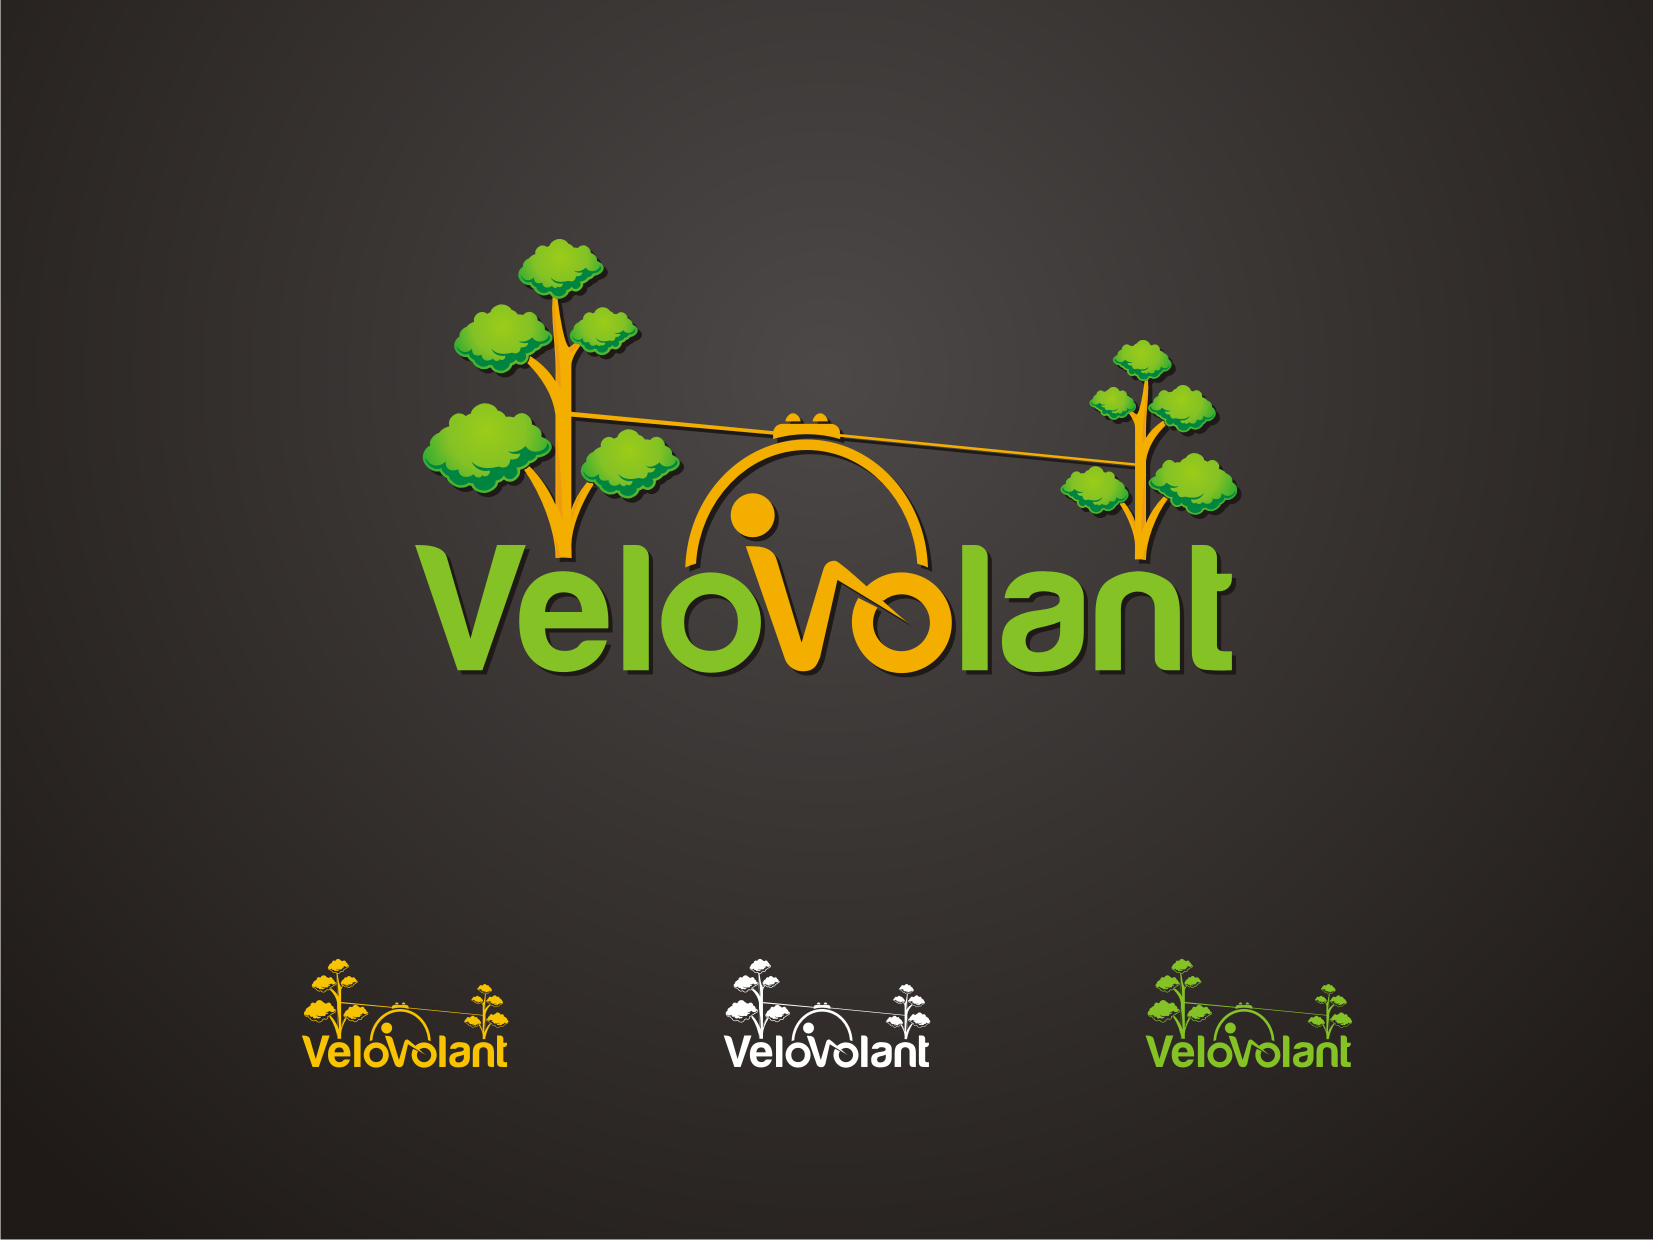 Help VeloVolant with a new logo